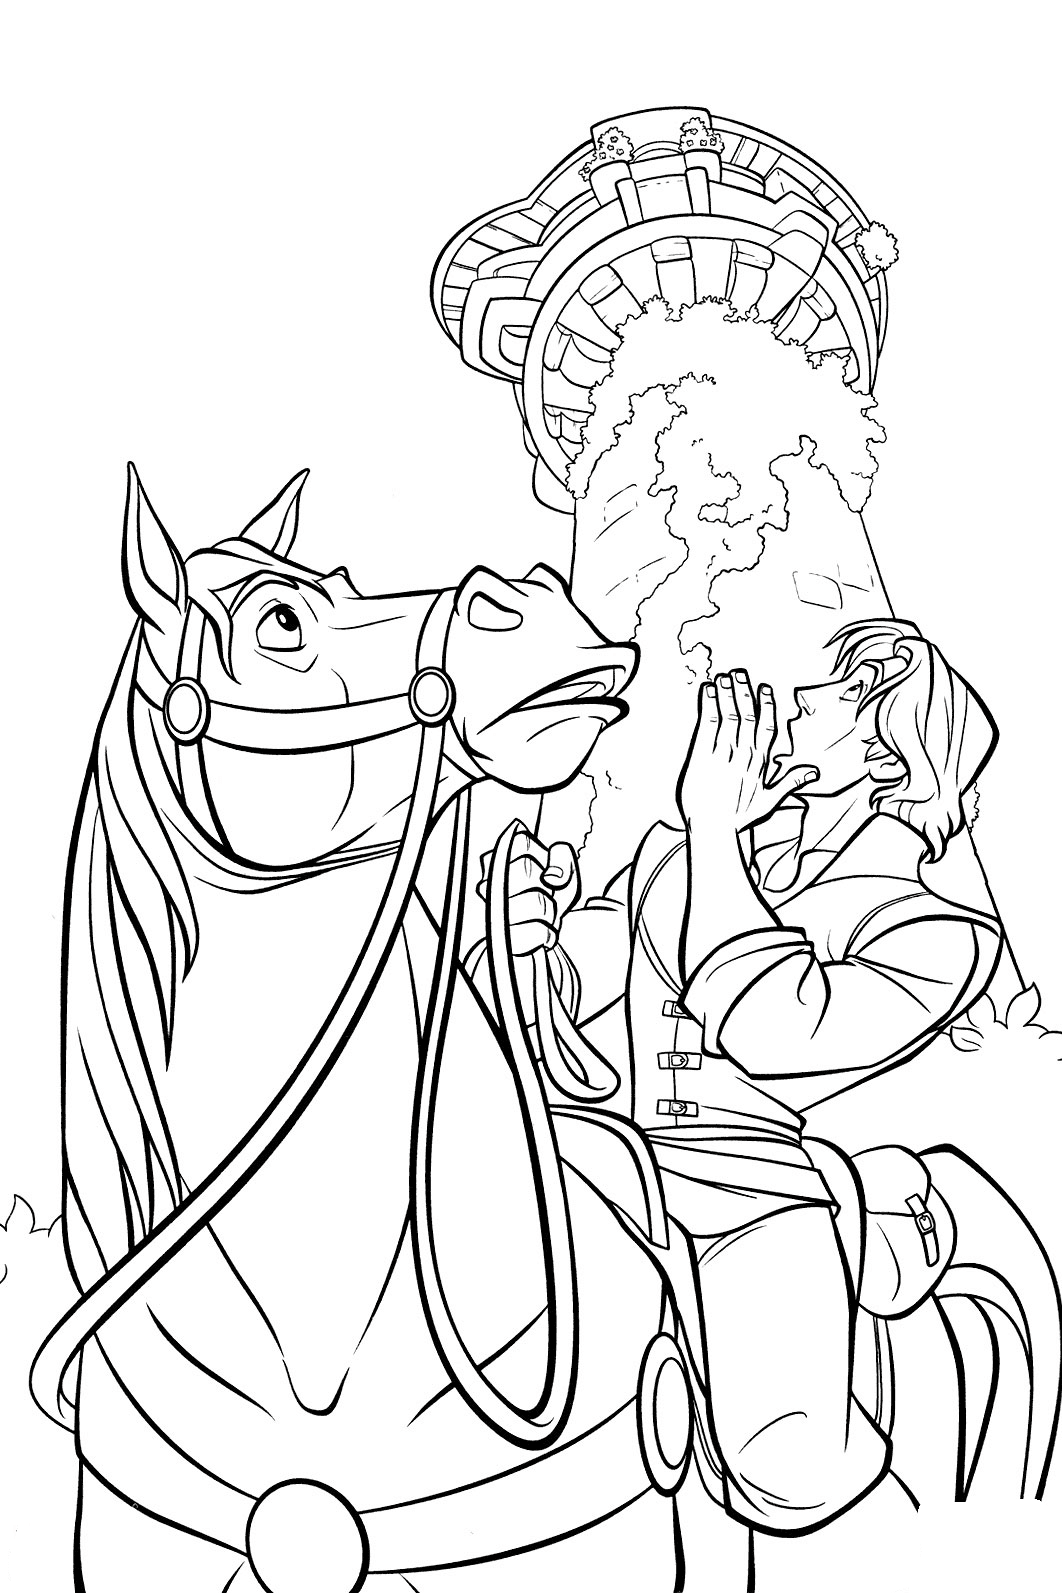 Maximus and Flynn Coloring Page